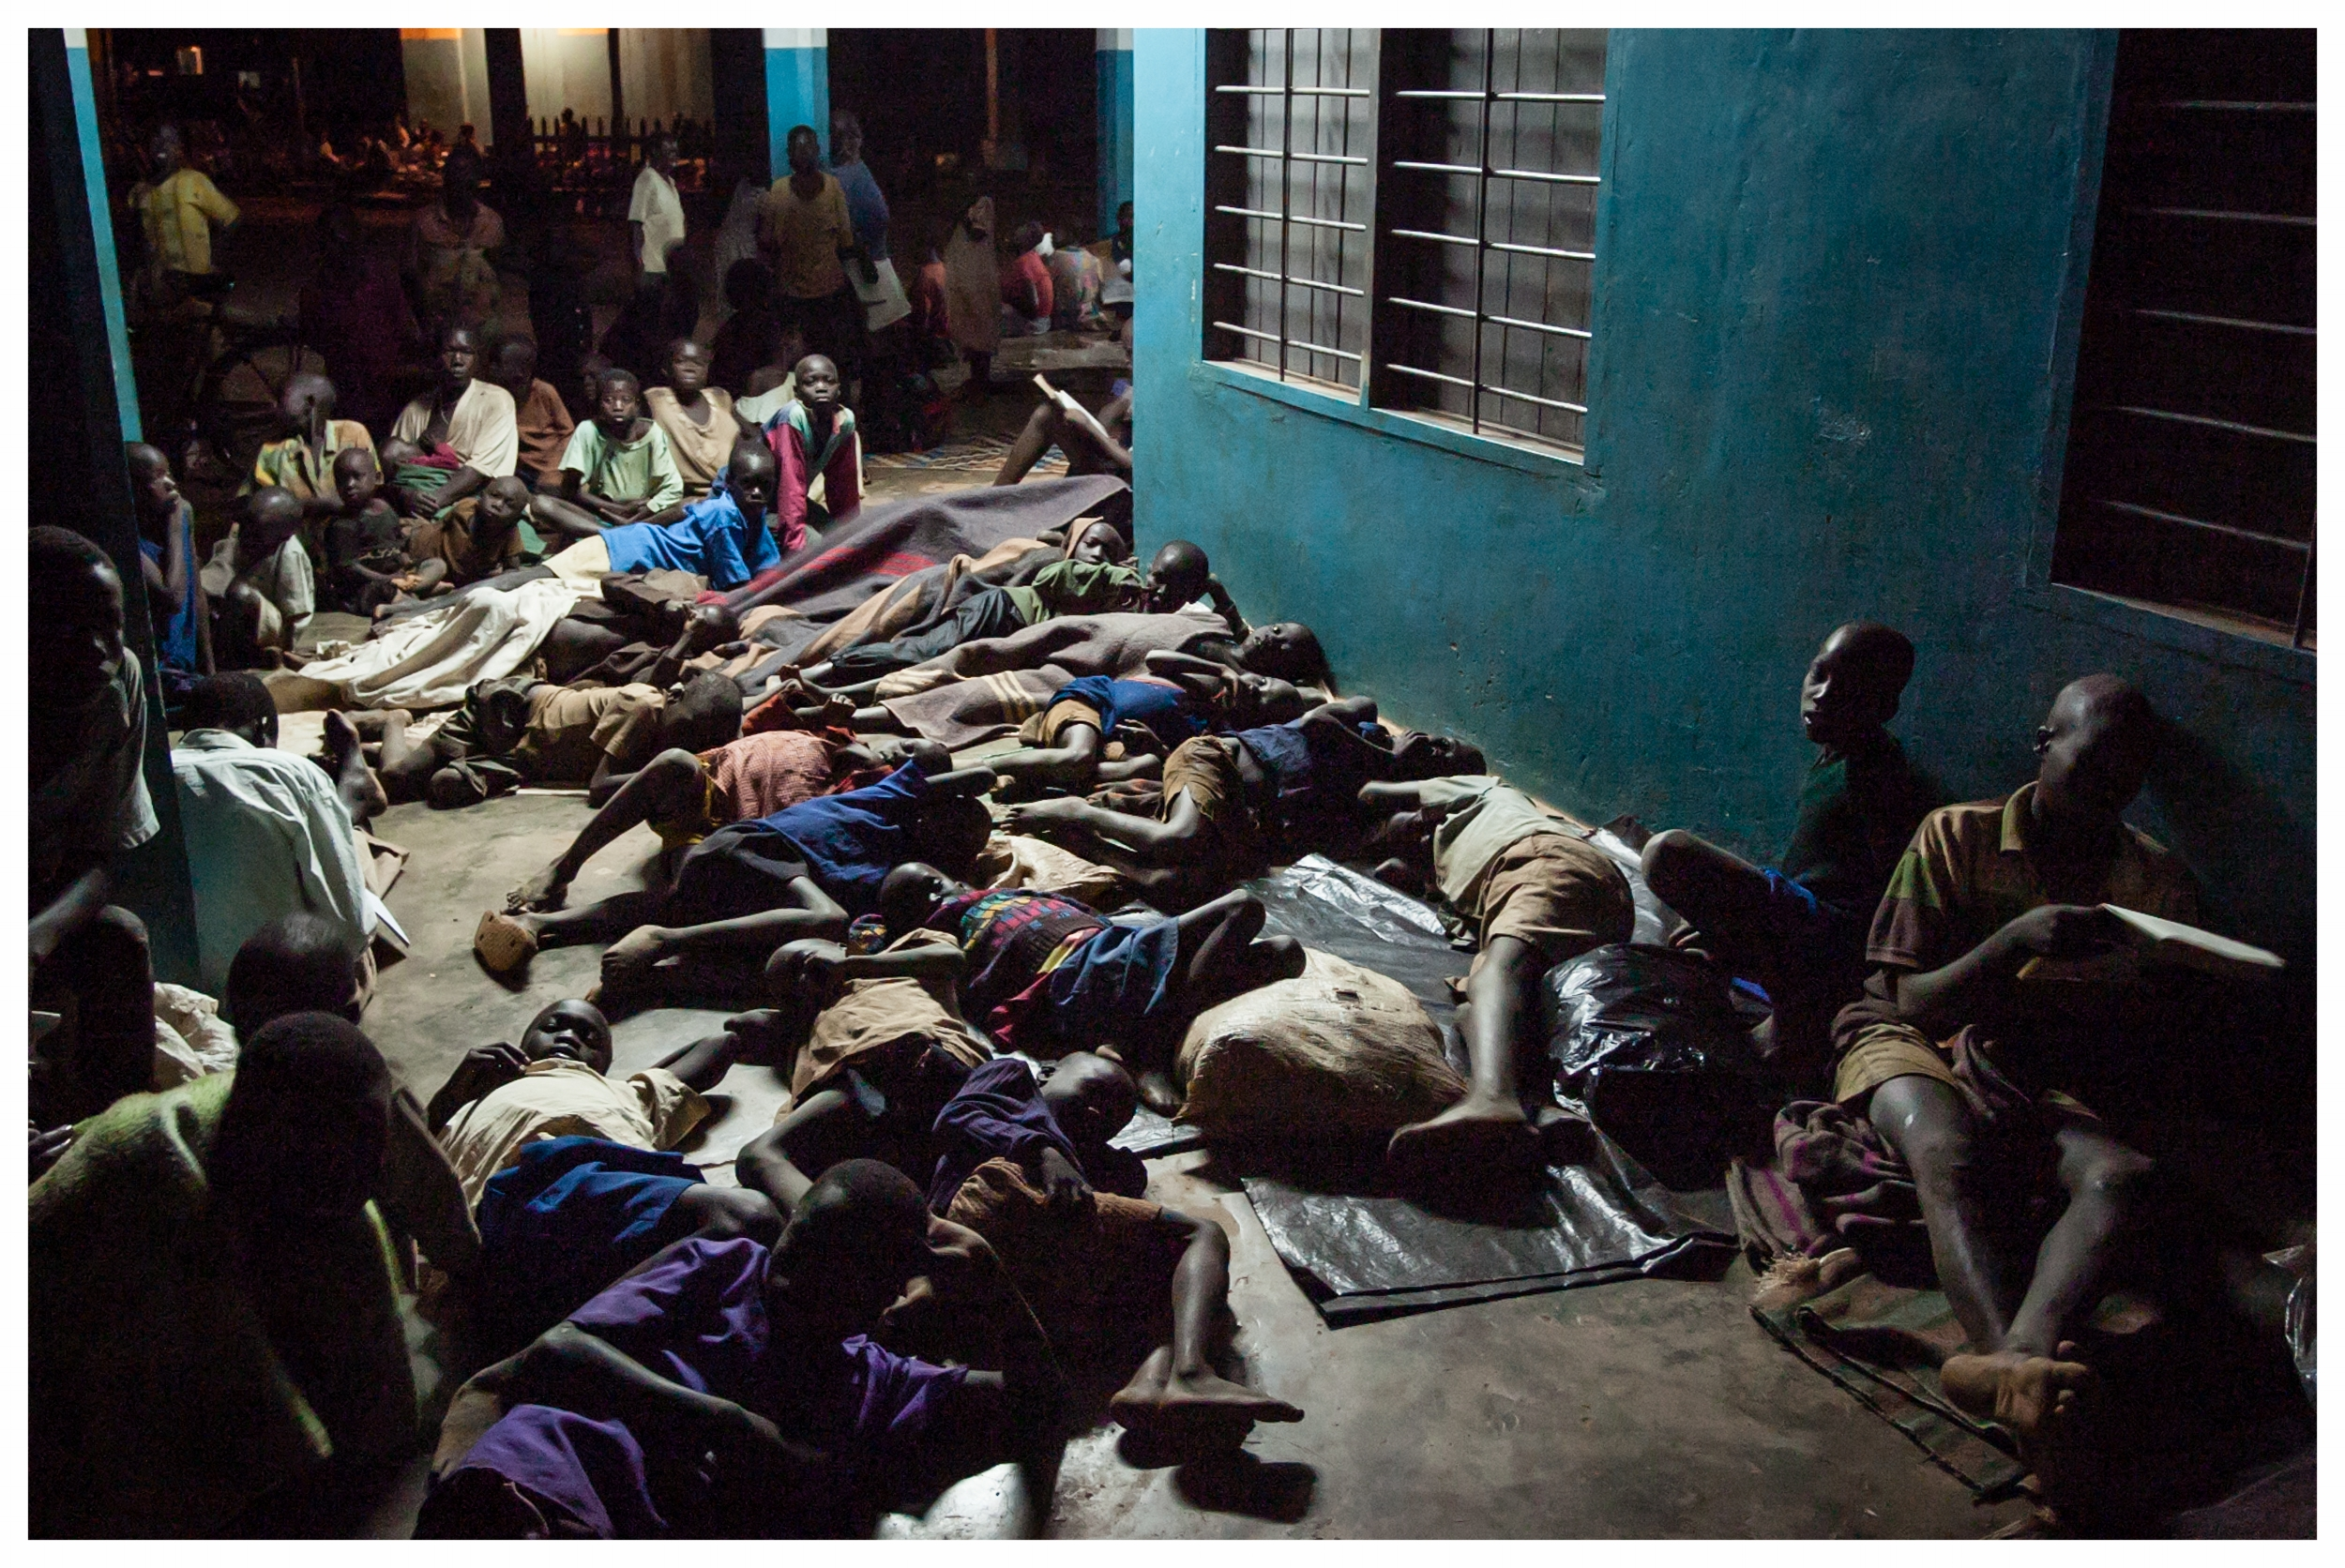 Children sleep rough wherever they can find shelter. Gulu, Northern Uganda. Photo © Marcus Perkins